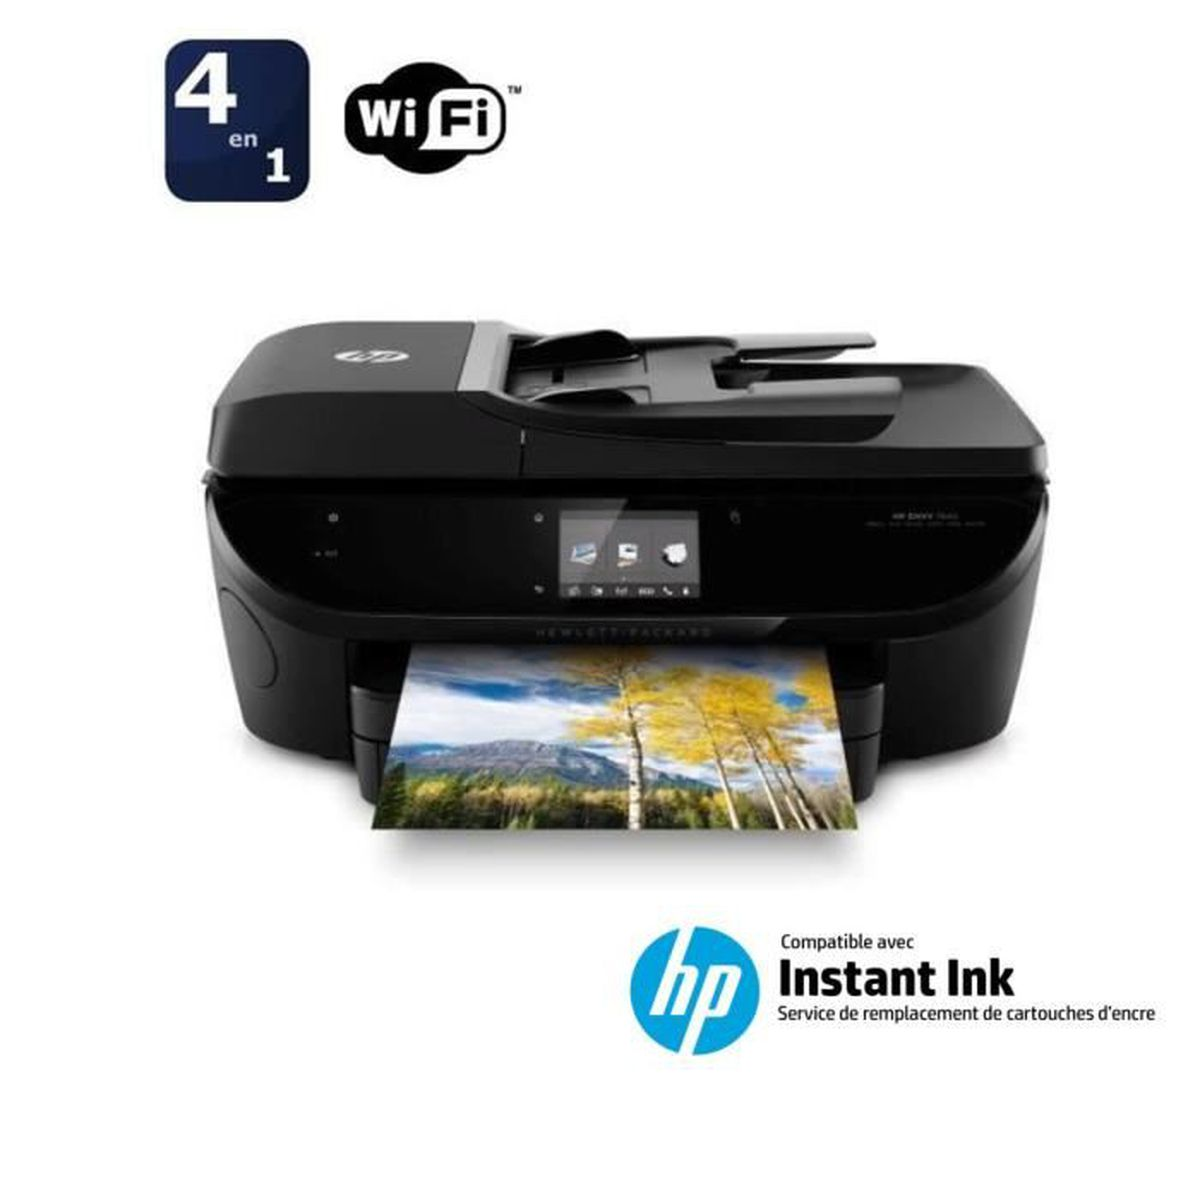 imprimante hp envy 7640 compatible instant ink achat vente imprimante hp envy 7640 cdiscount. Black Bedroom Furniture Sets. Home Design Ideas